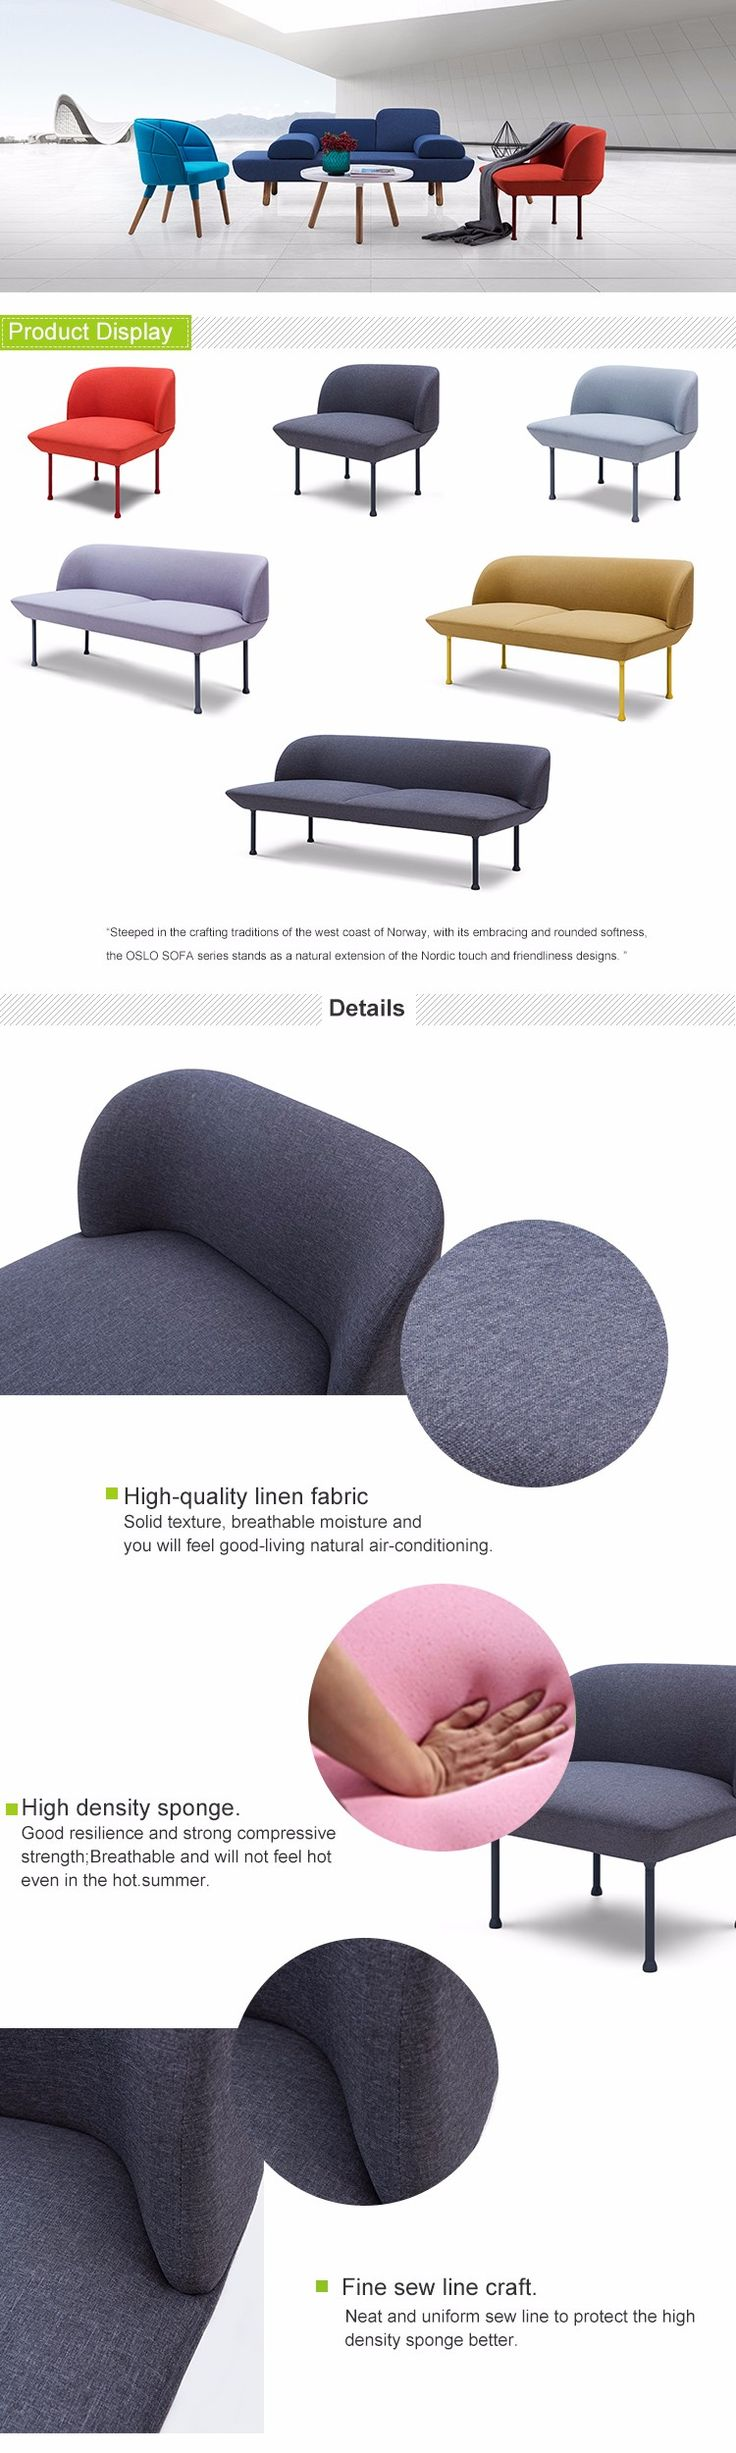 Scandinavian Fabric Two Seat Sofa In Bedroom For Hotel, View Sofa In Bedroom, OEM Product Details from Mindawe  Furniture Limited (Huizhou) on Alibaba.com